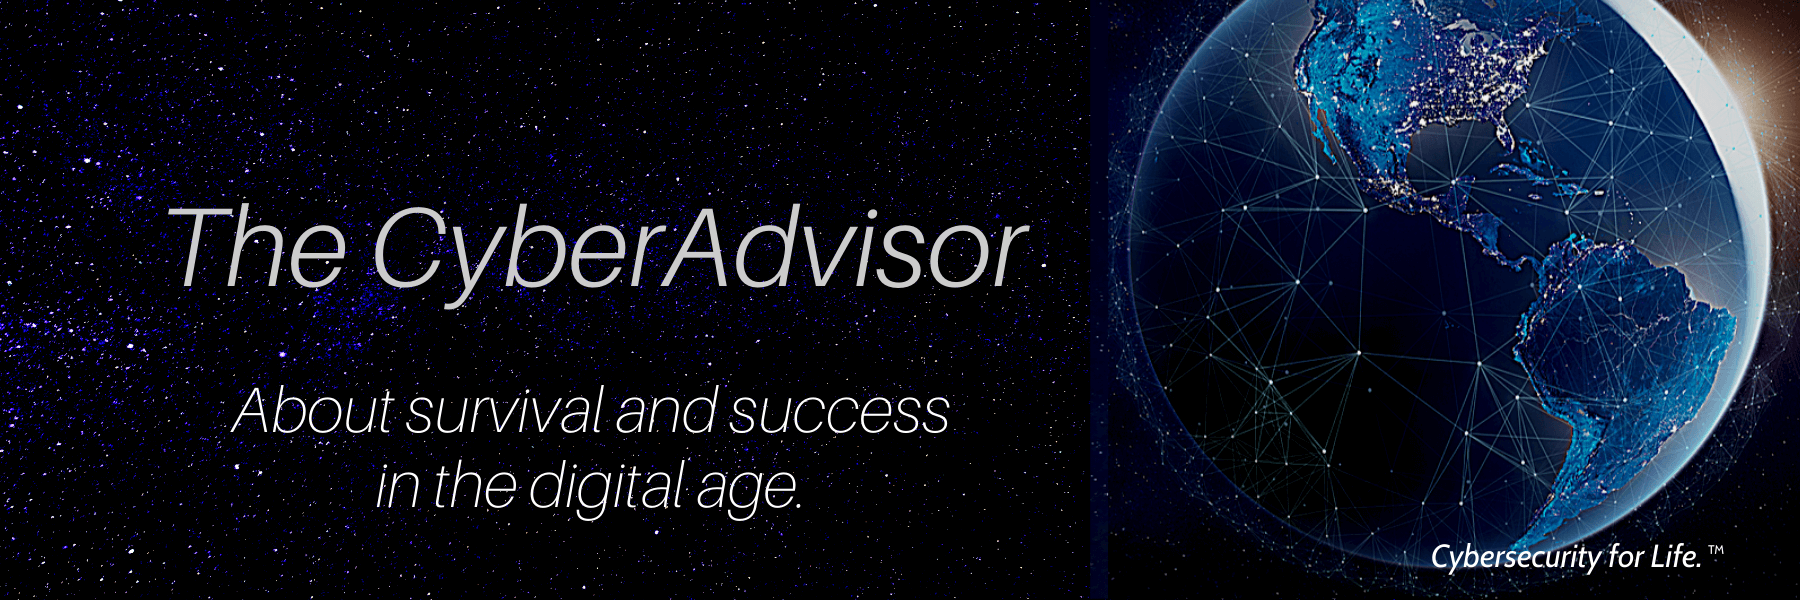 Copy of CyberAdvisor (9)